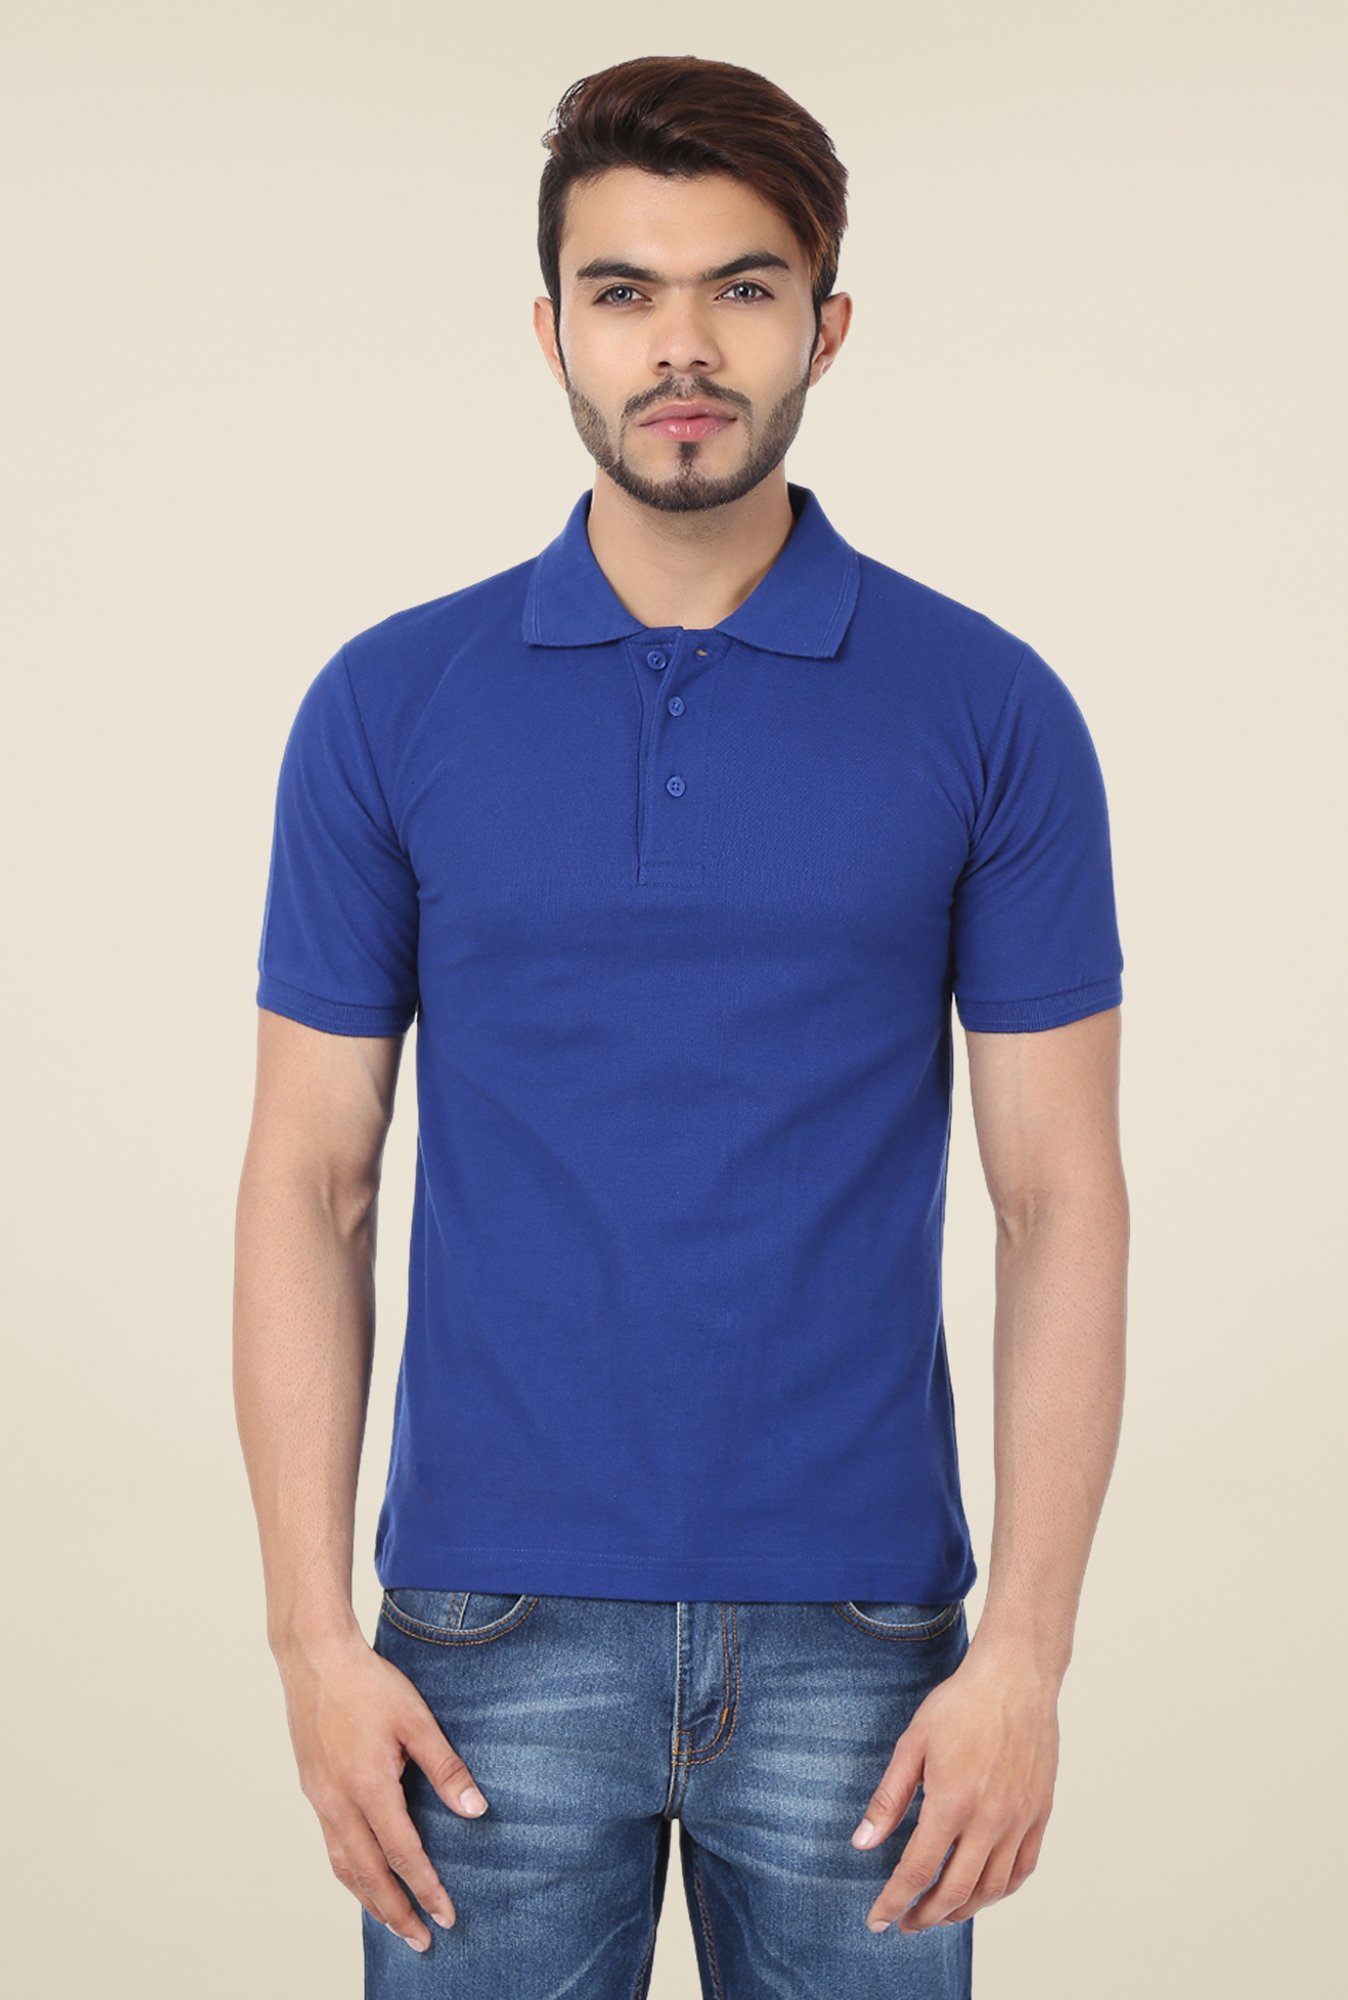 Weardo Royal Blue Polo T Shirt